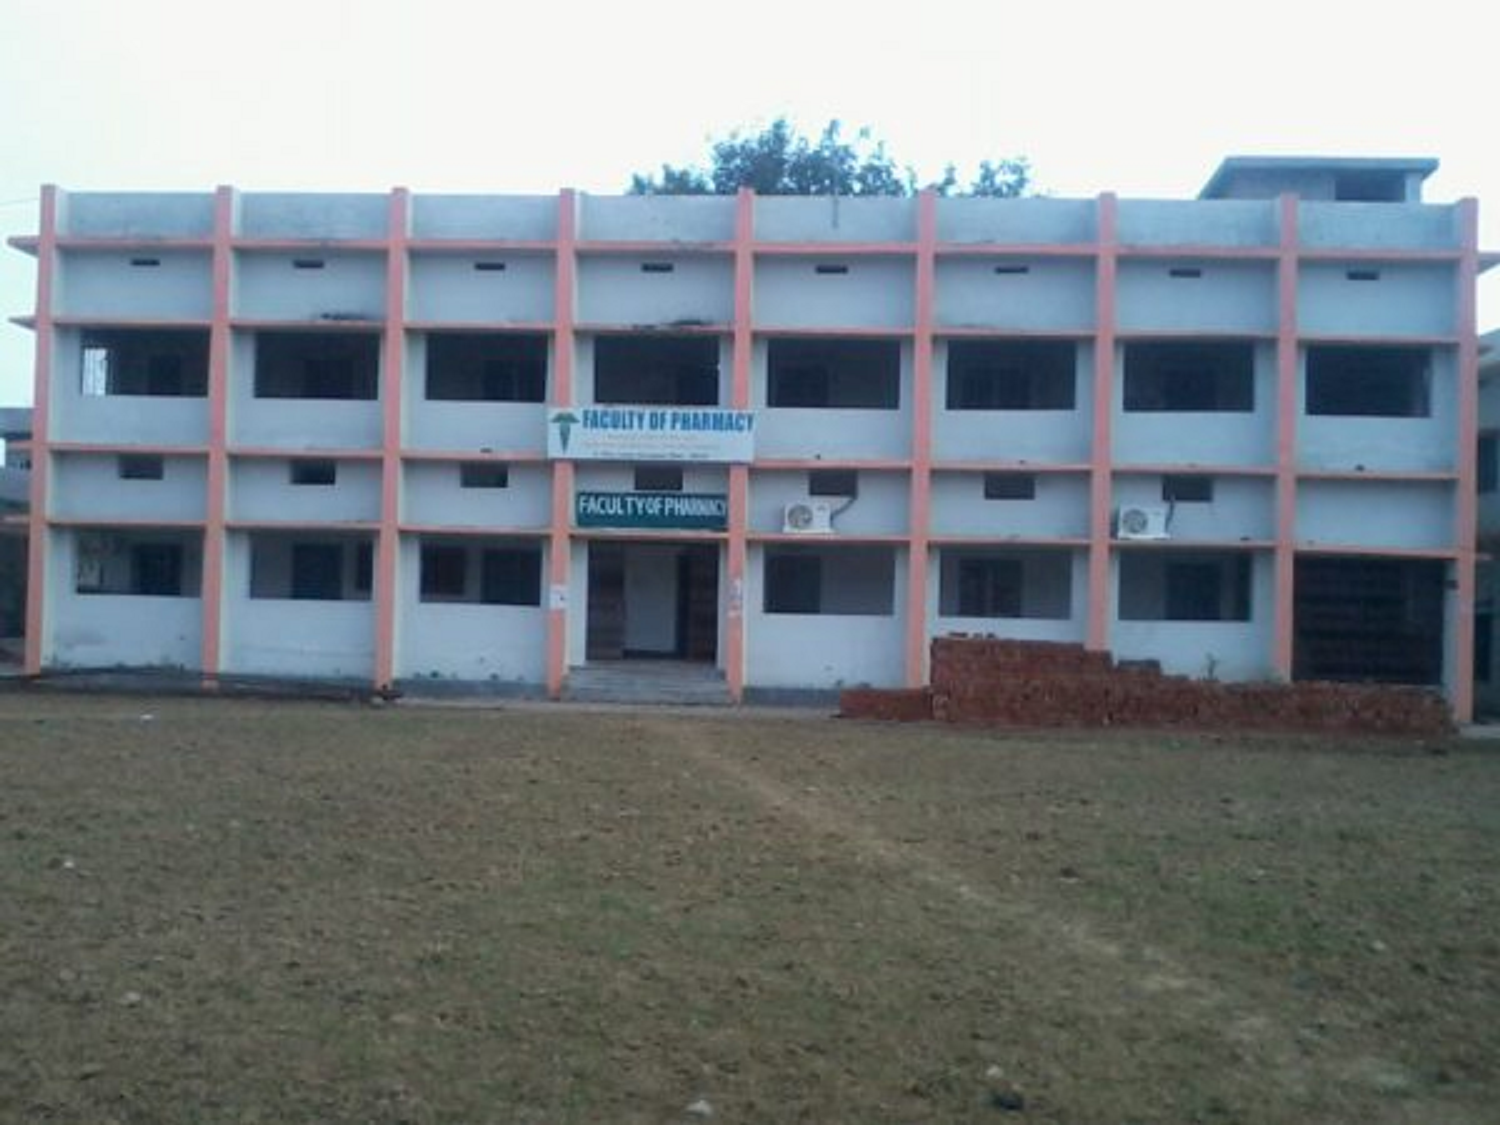 Faculty of Pharmacy Sachchidanand Sinha College